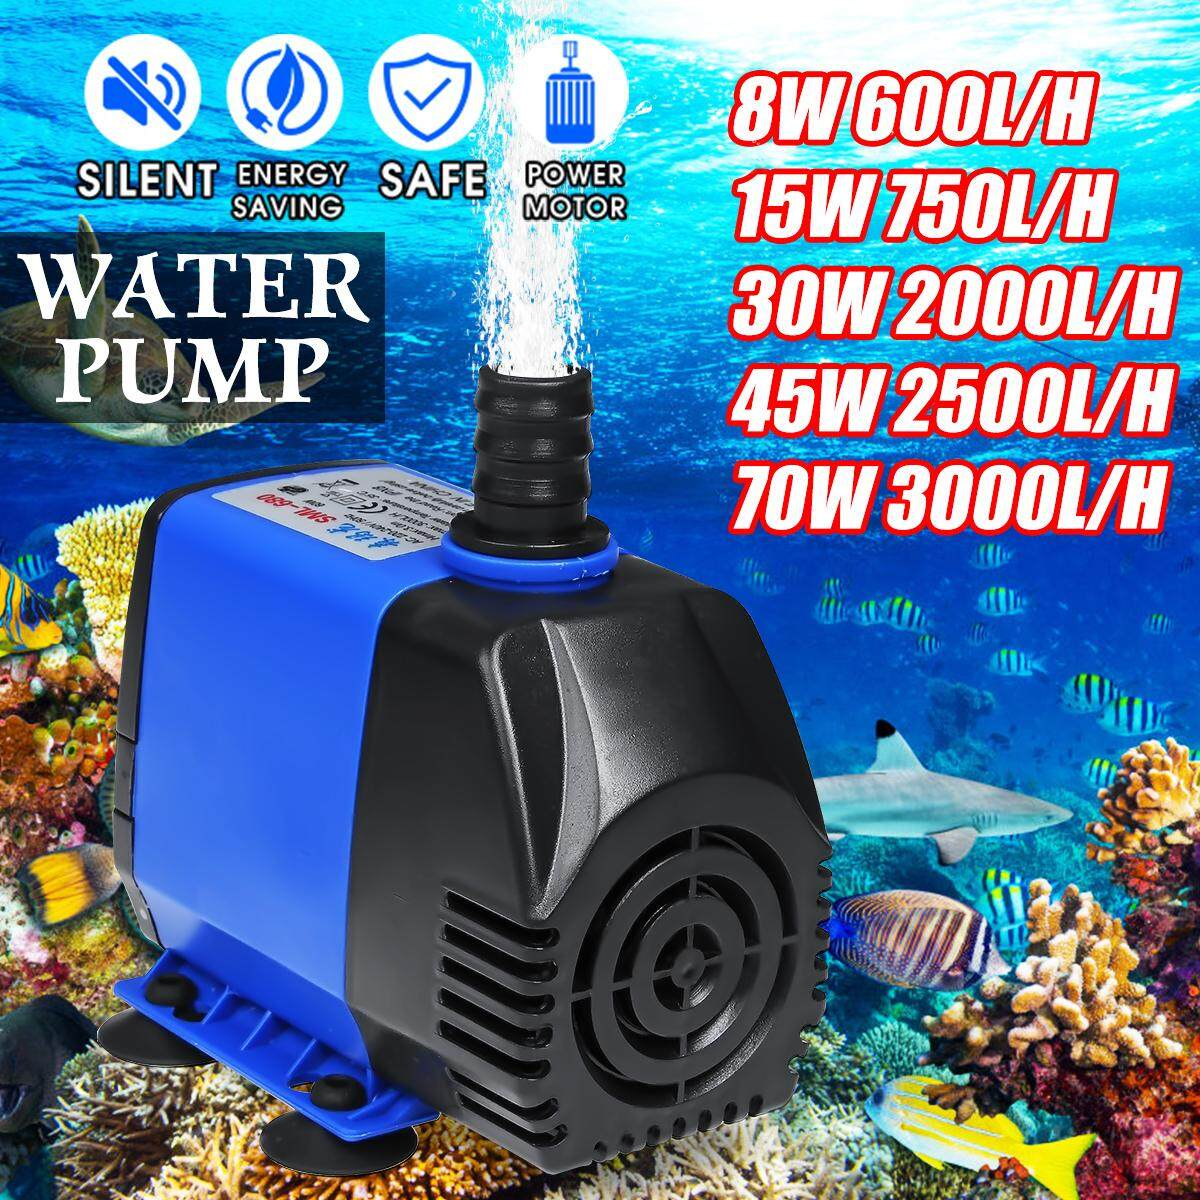 【New Arrival ON SALE】600L/H - 3000L/H Submersible Water Pump Fish Tank Pond  Aquarium Fountain